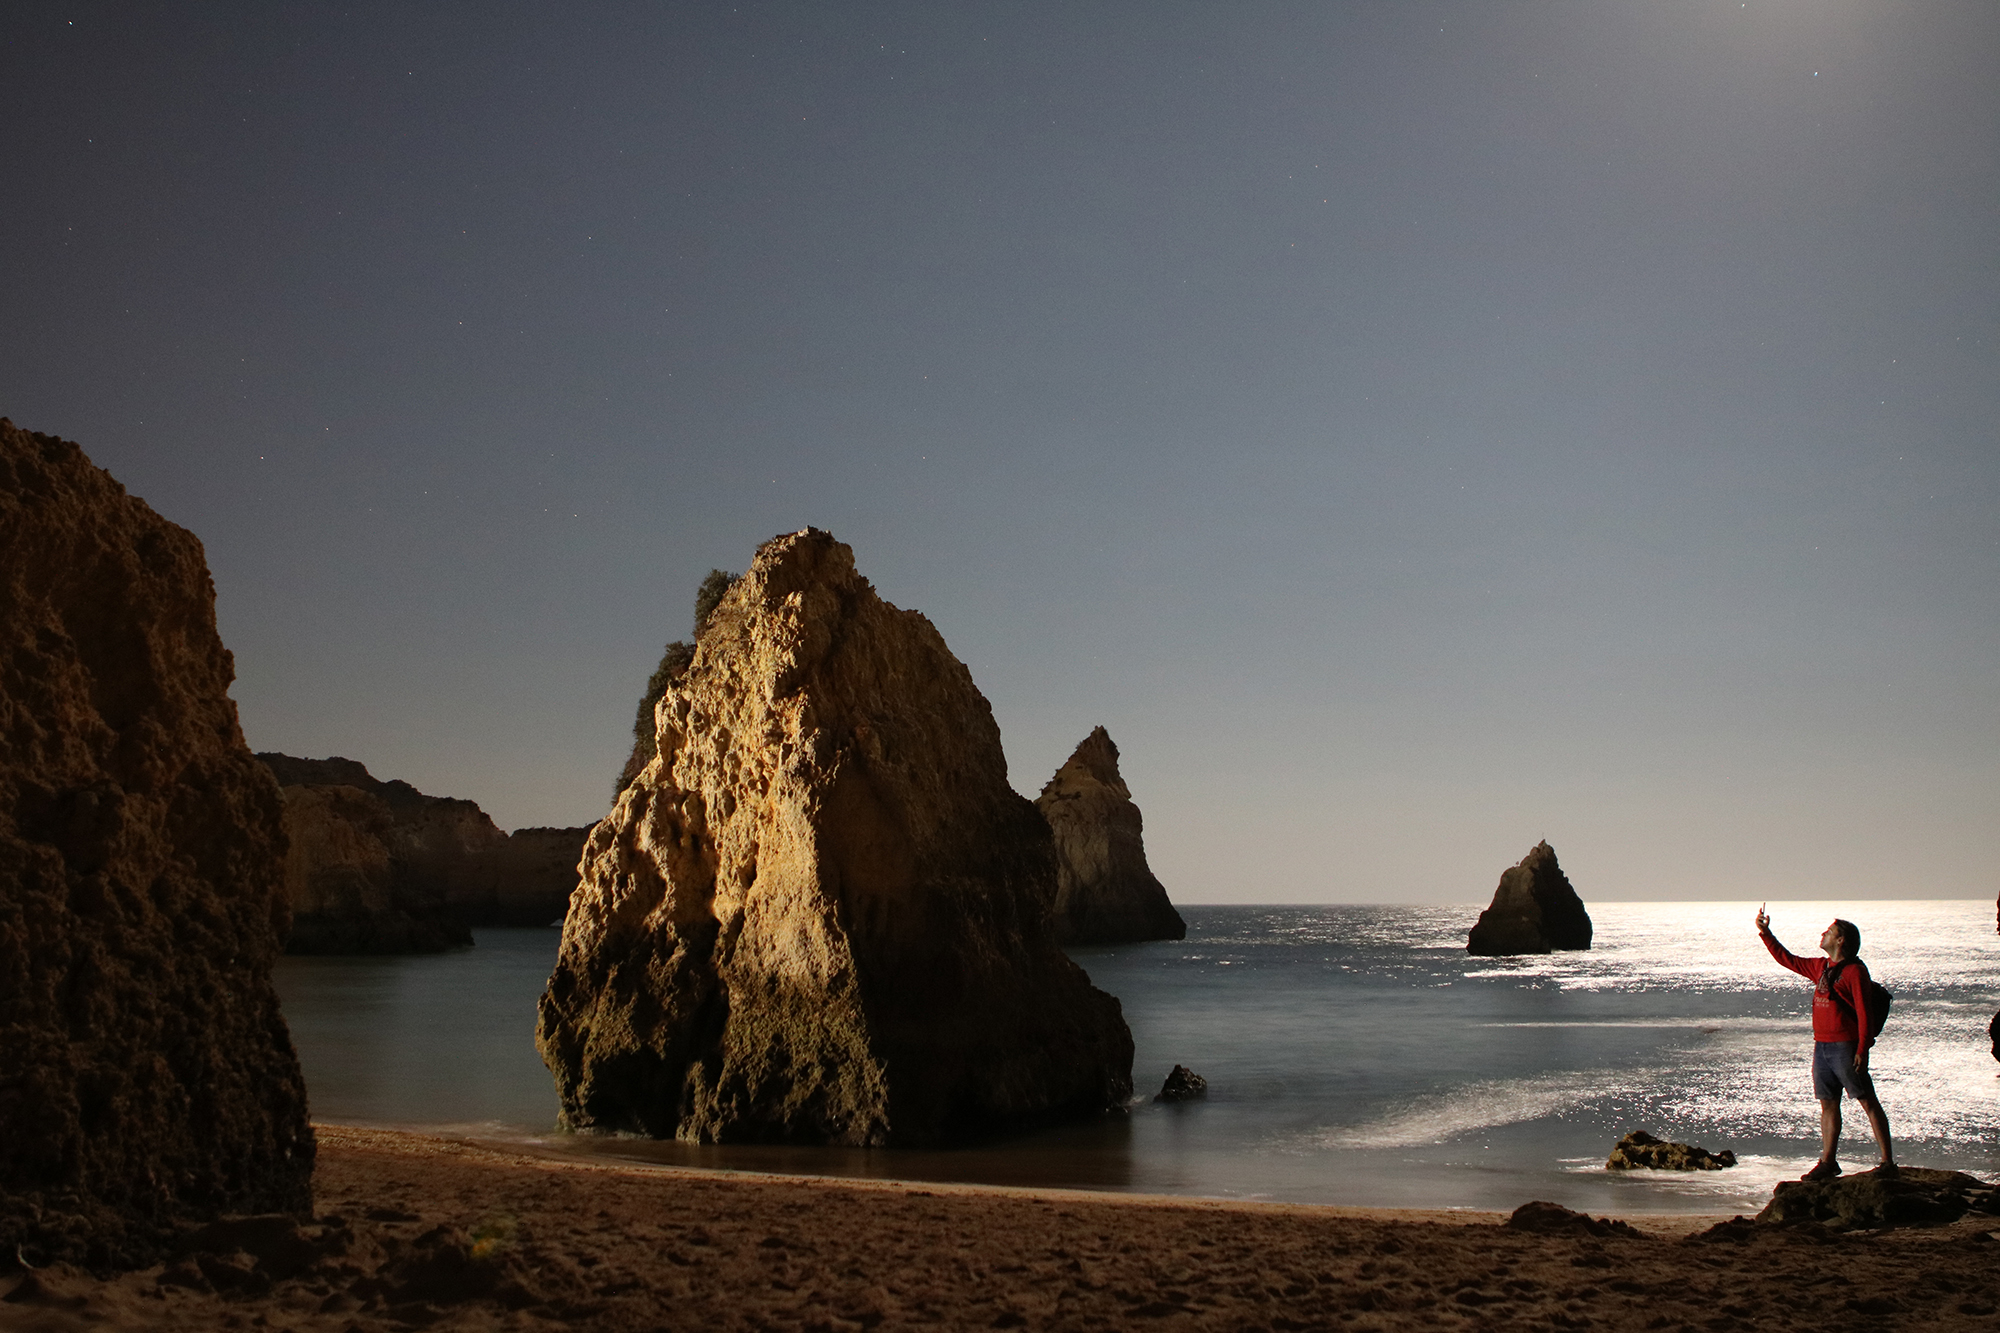 night_photography_tour_algarve